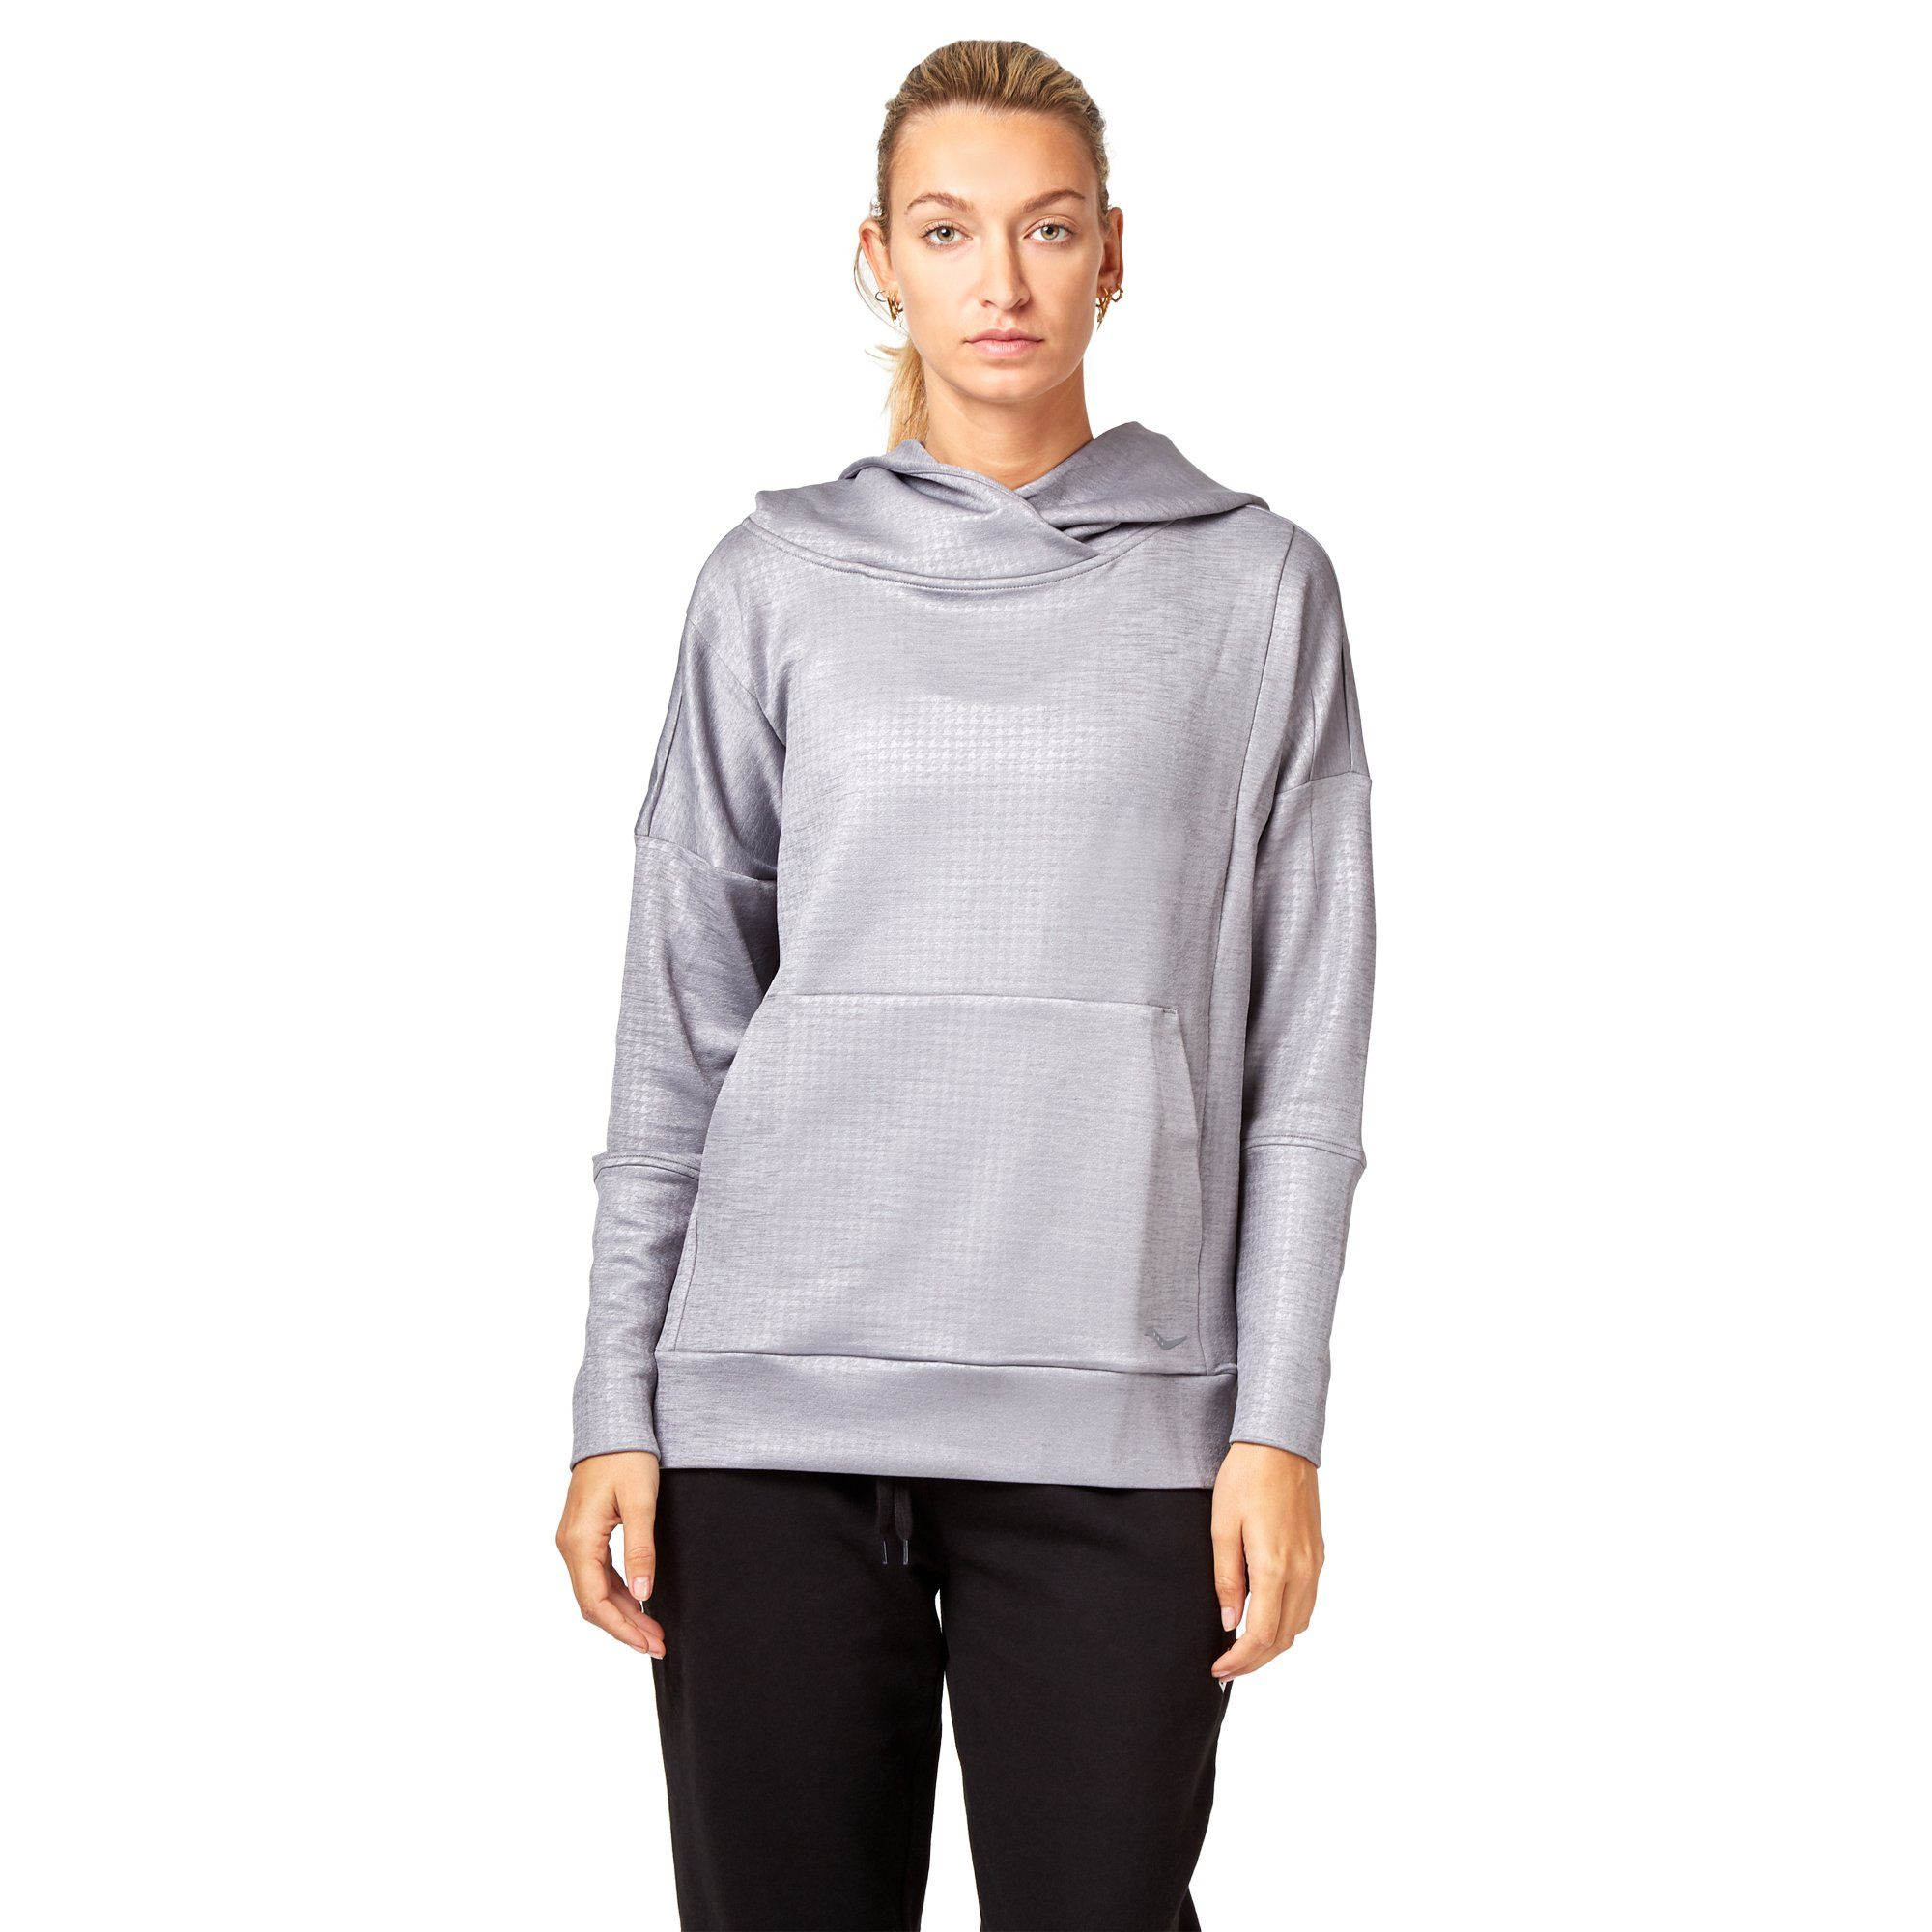 Saucony Uptown Hoodie - Dark Grey/ Heather Apparel Saucony